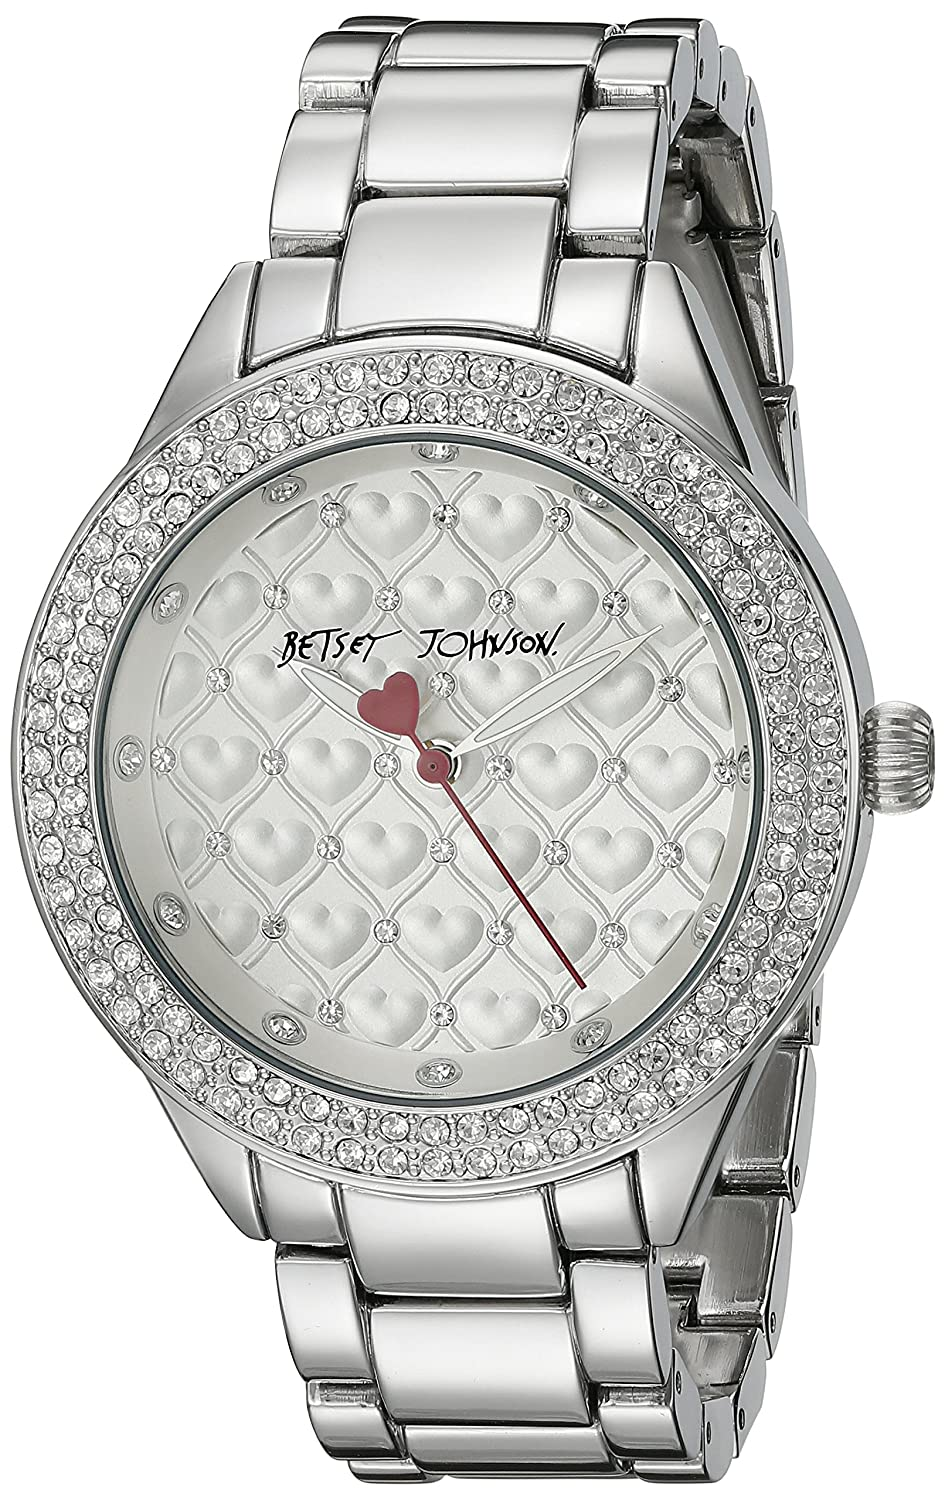 Betsey Johnson Women's BJ00467-11 Analog Display Quartz Silver Watch